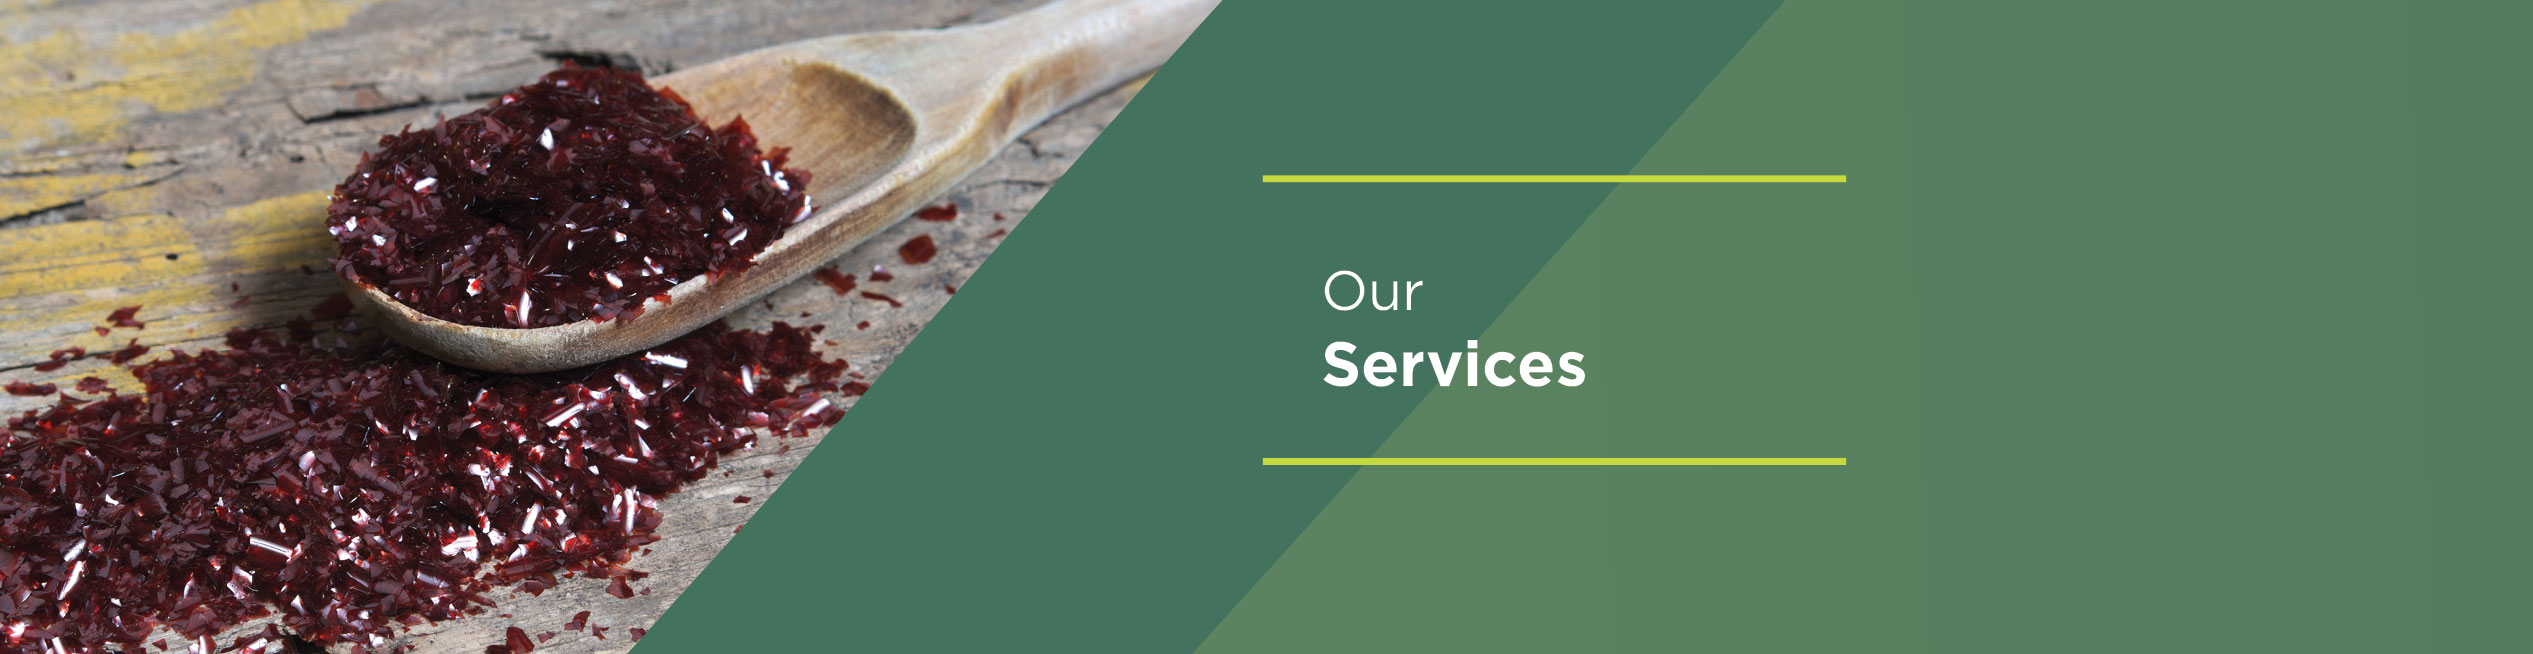 Our-Services-banner-1